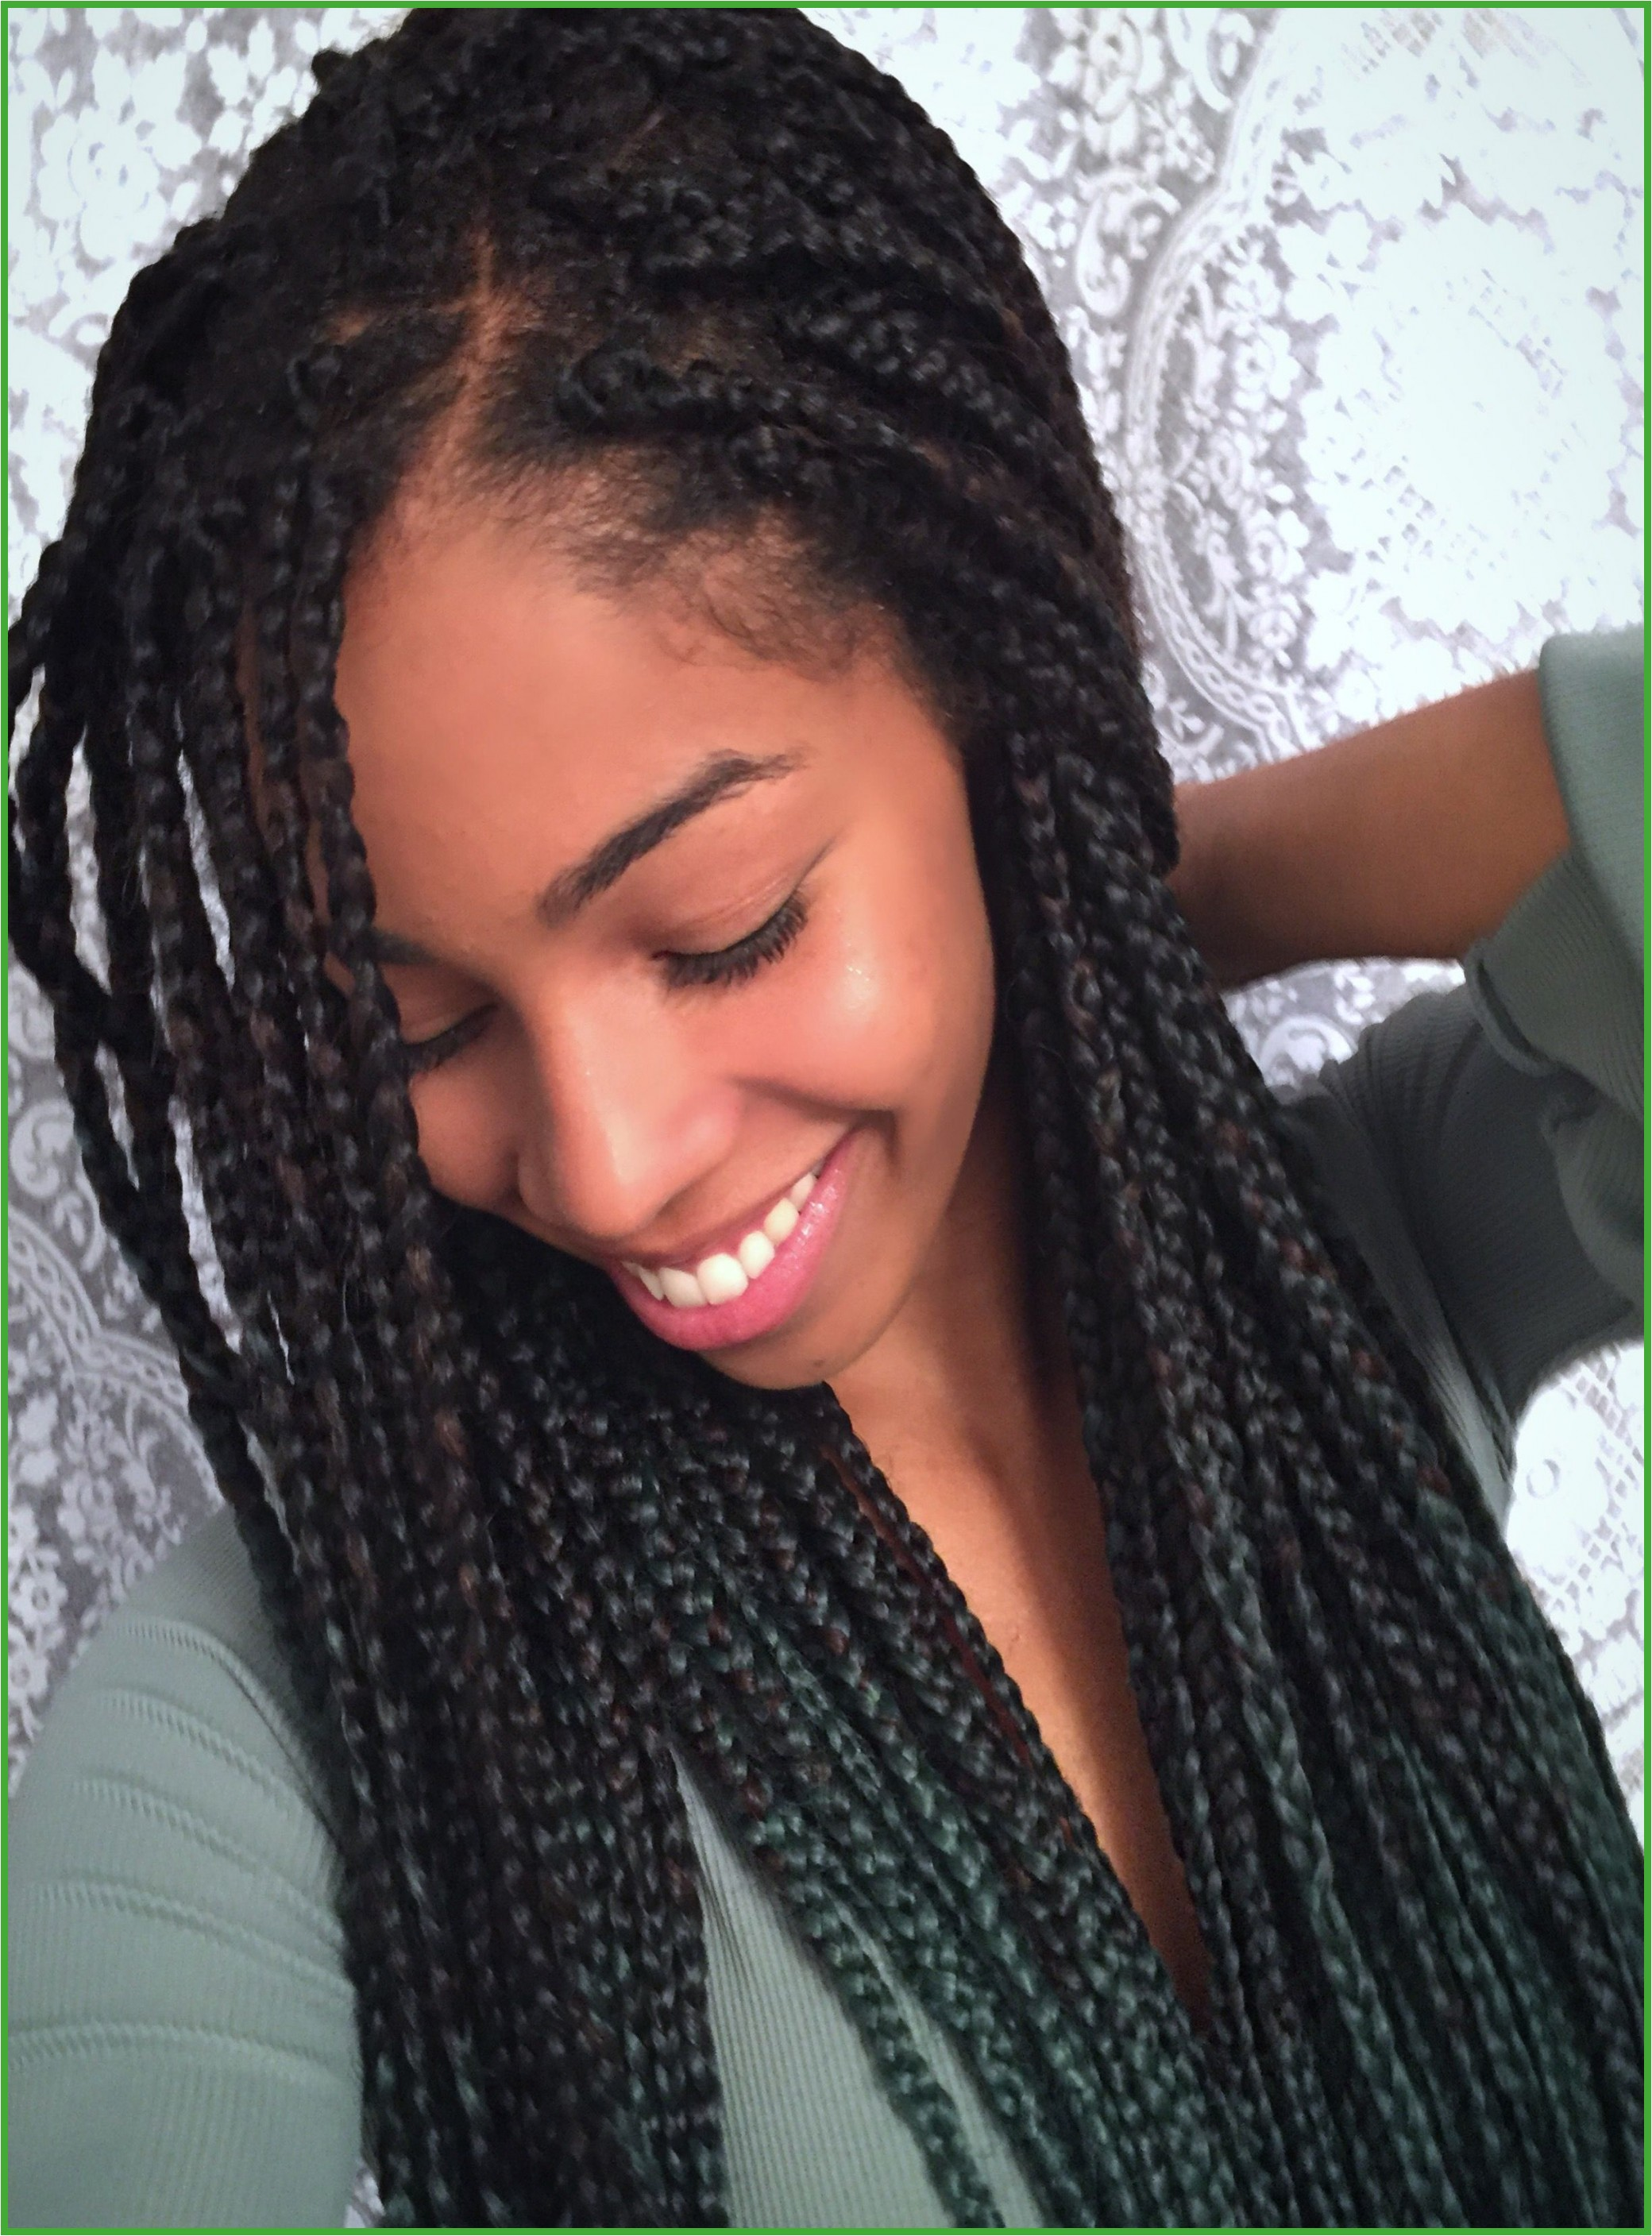 Box Braid Inspiration Protective Styles for Natural Hair Care Free Black Girl Melanin Glow